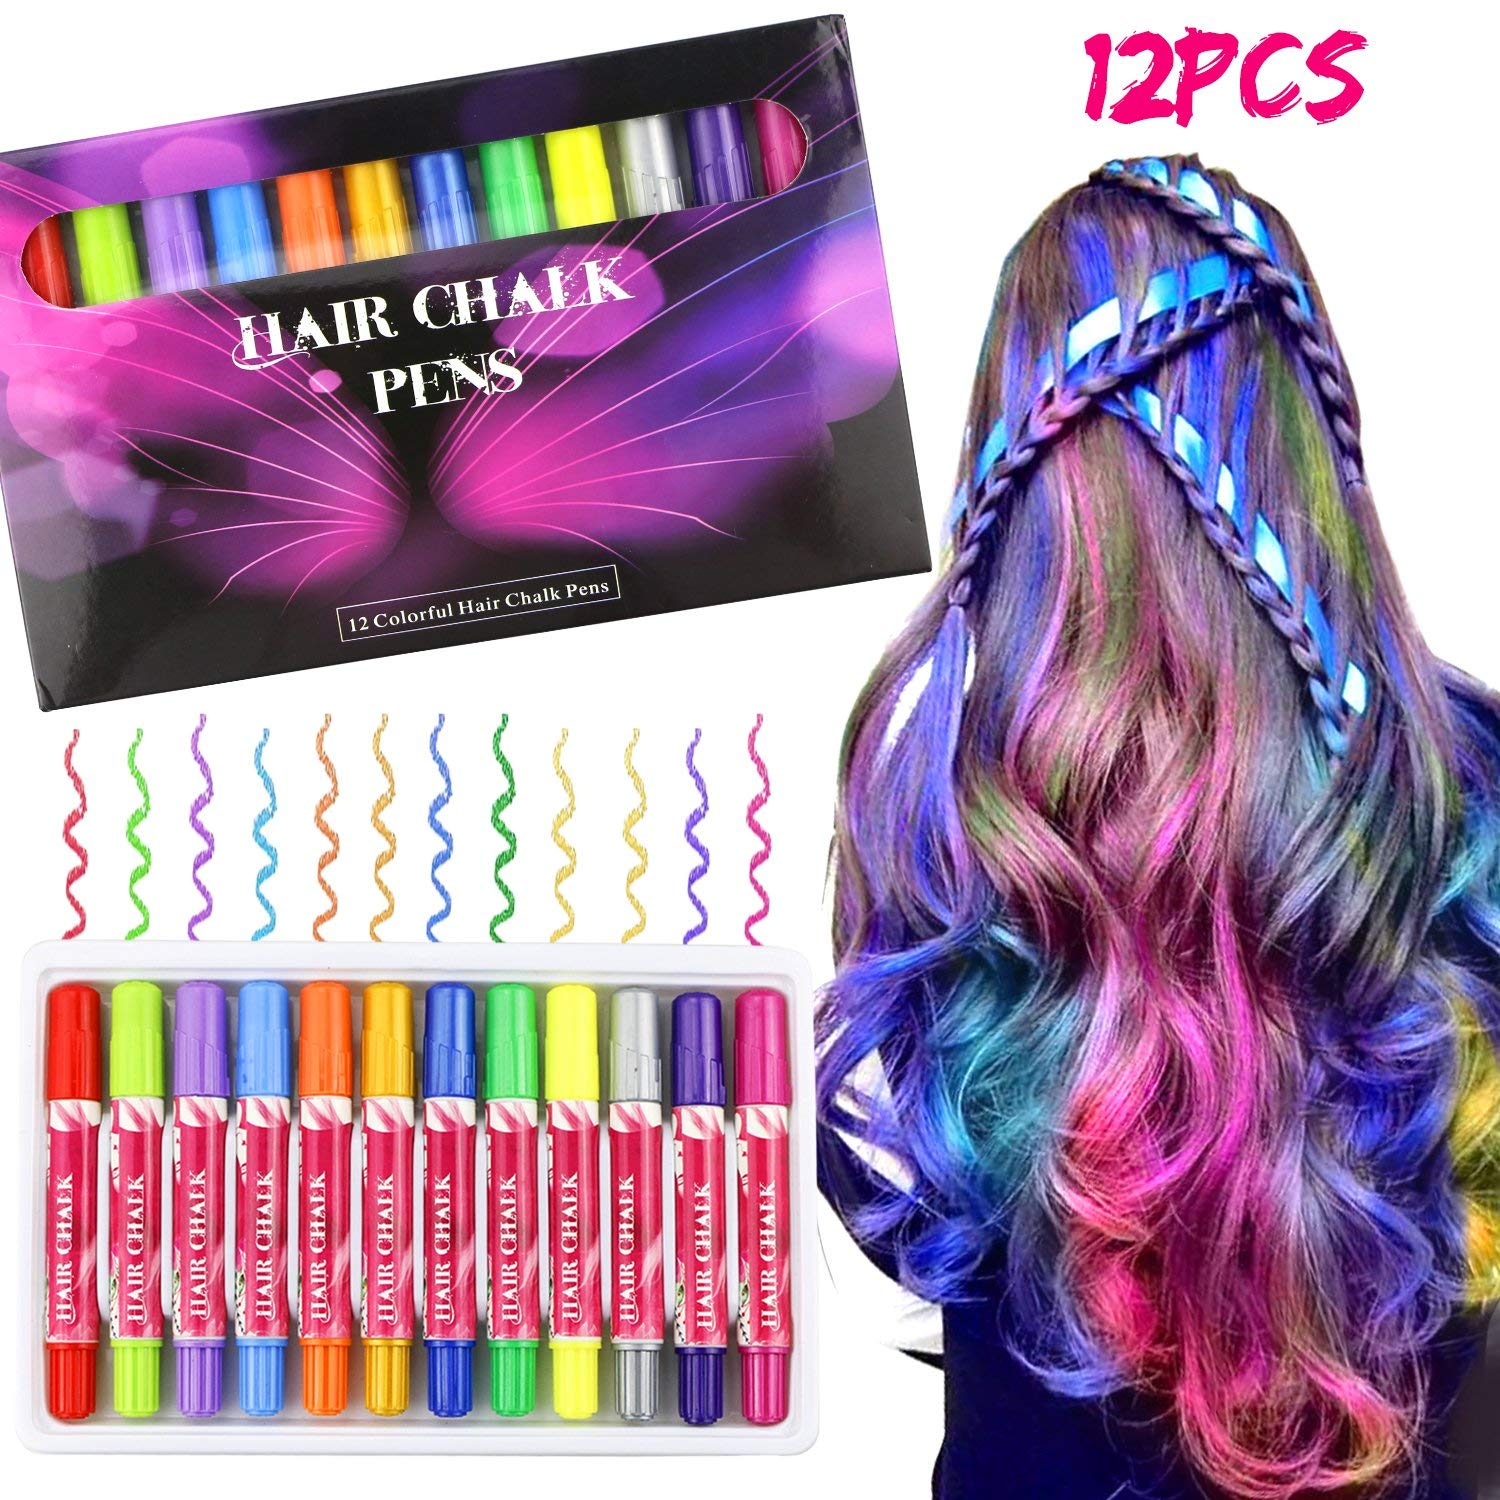 12 Colors Hair Chalk Set